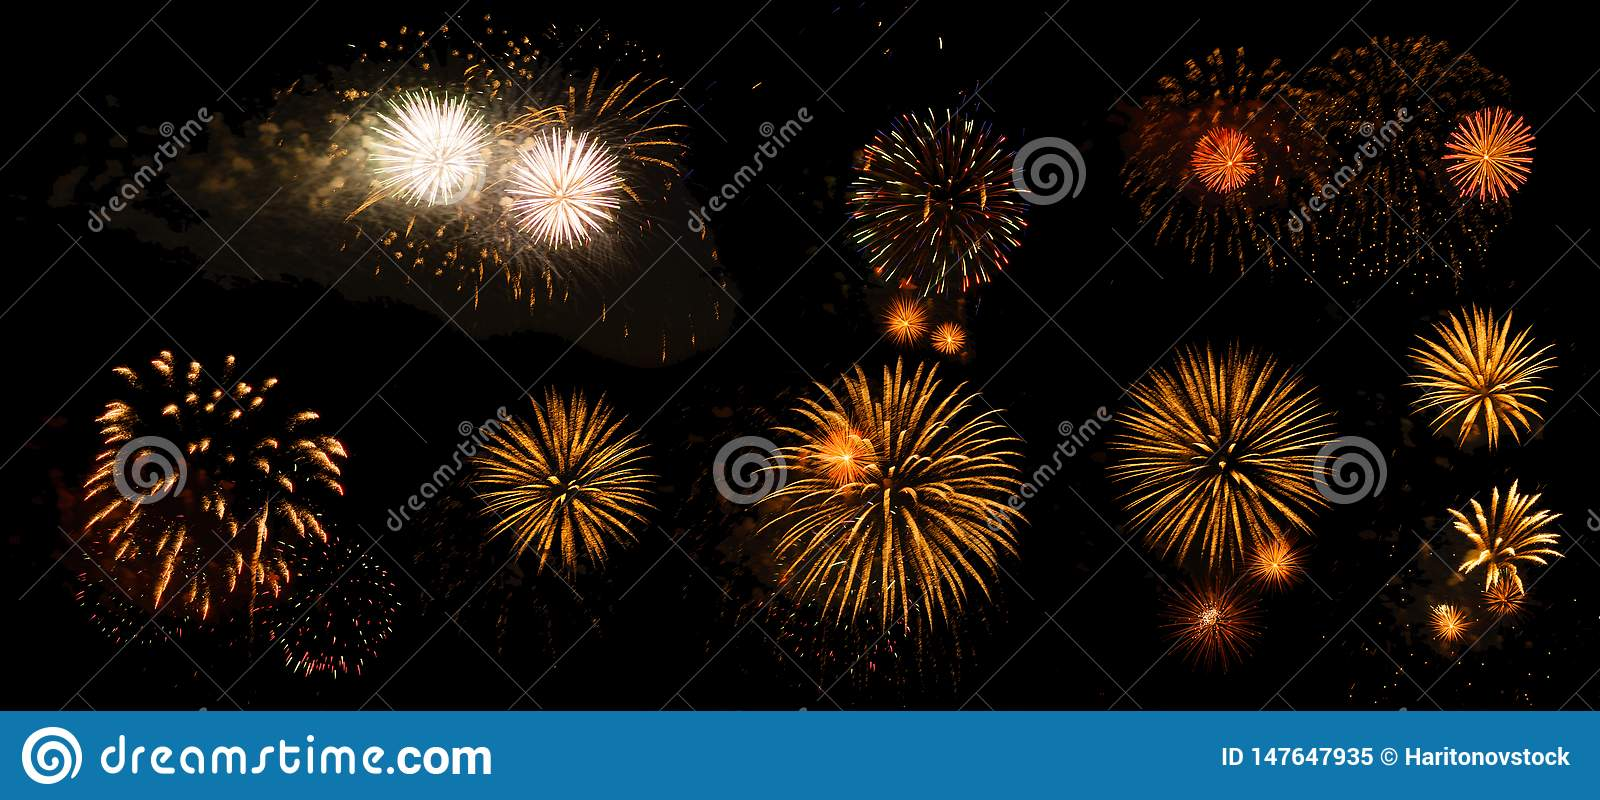 Fireworks on a black background isolated